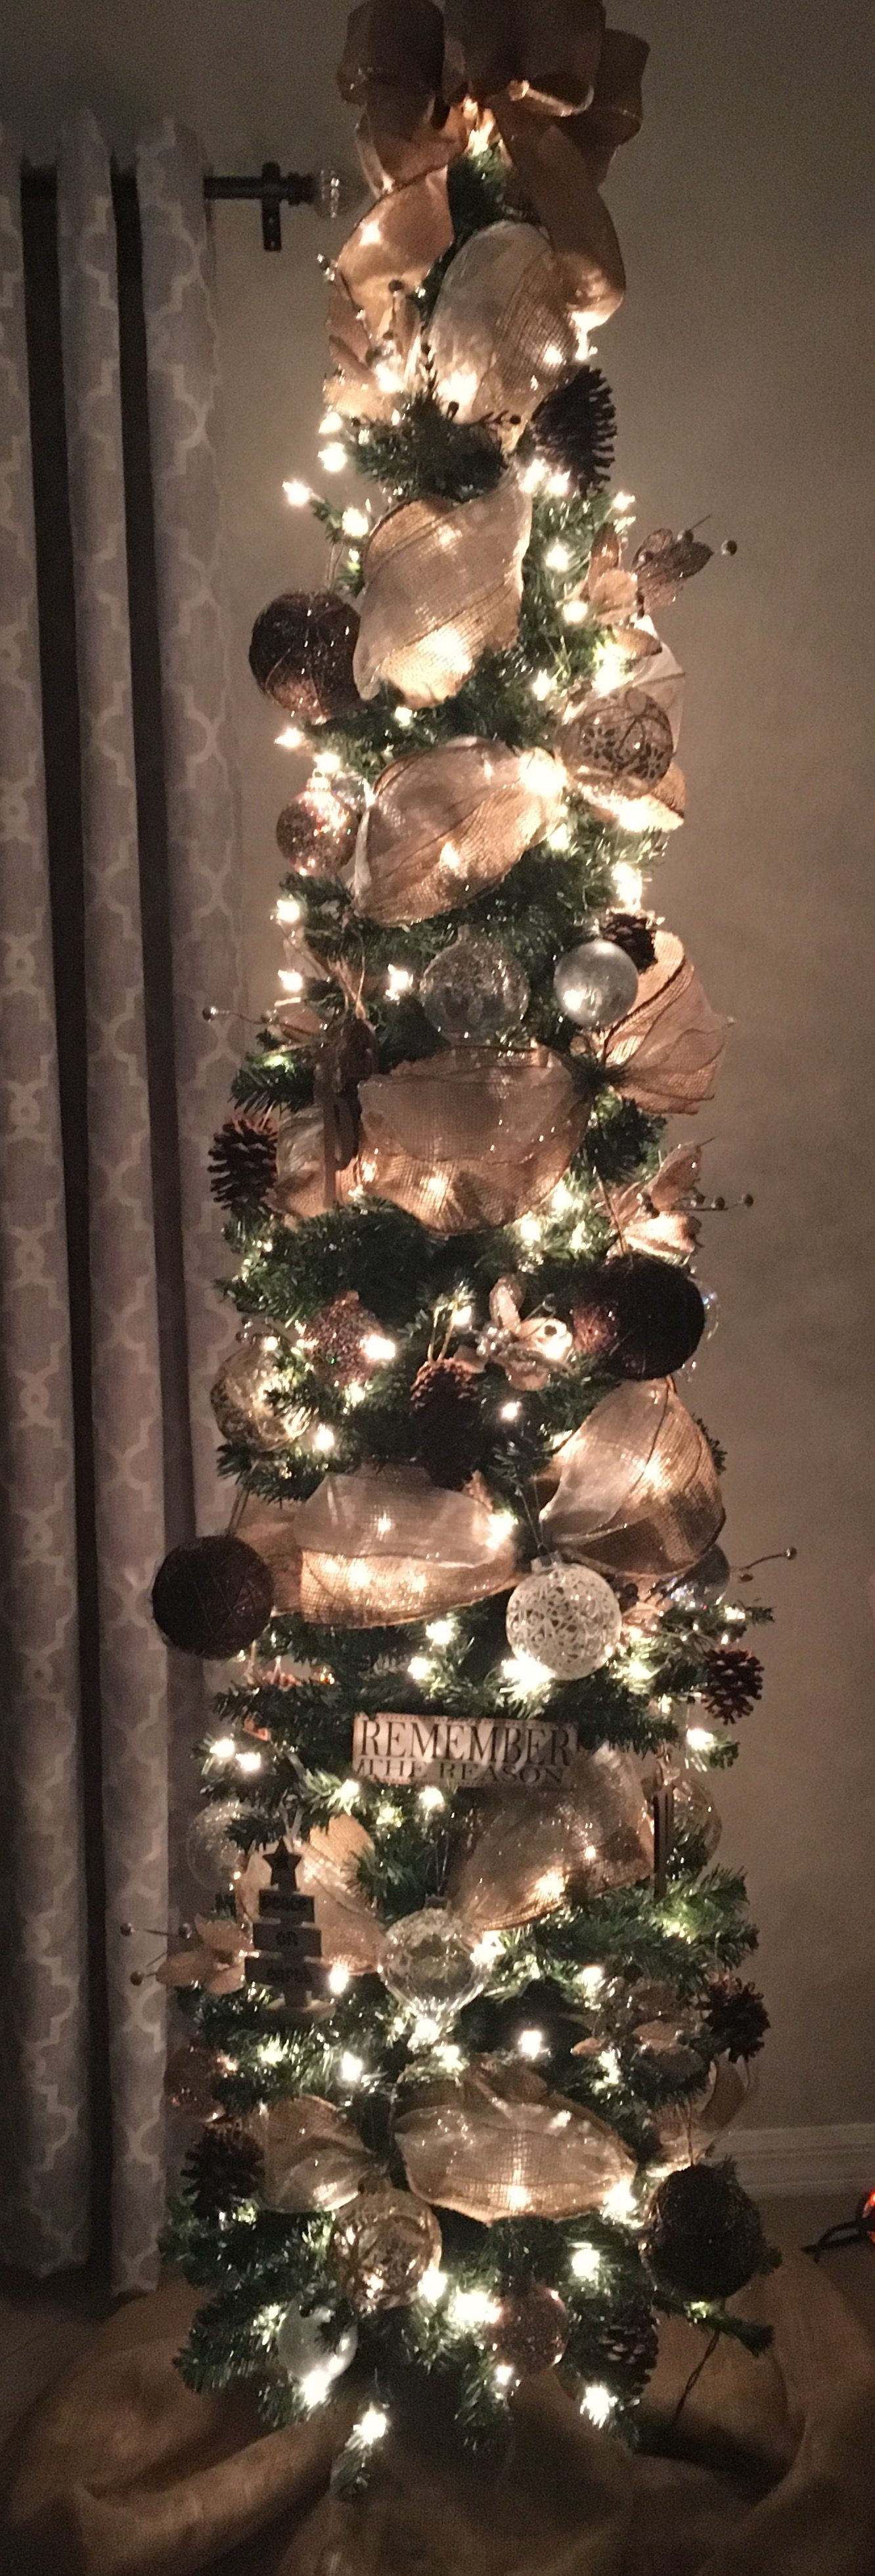 Inspiring Rustic Christmas Tree Decoration Ideas For Cheerful Day 31